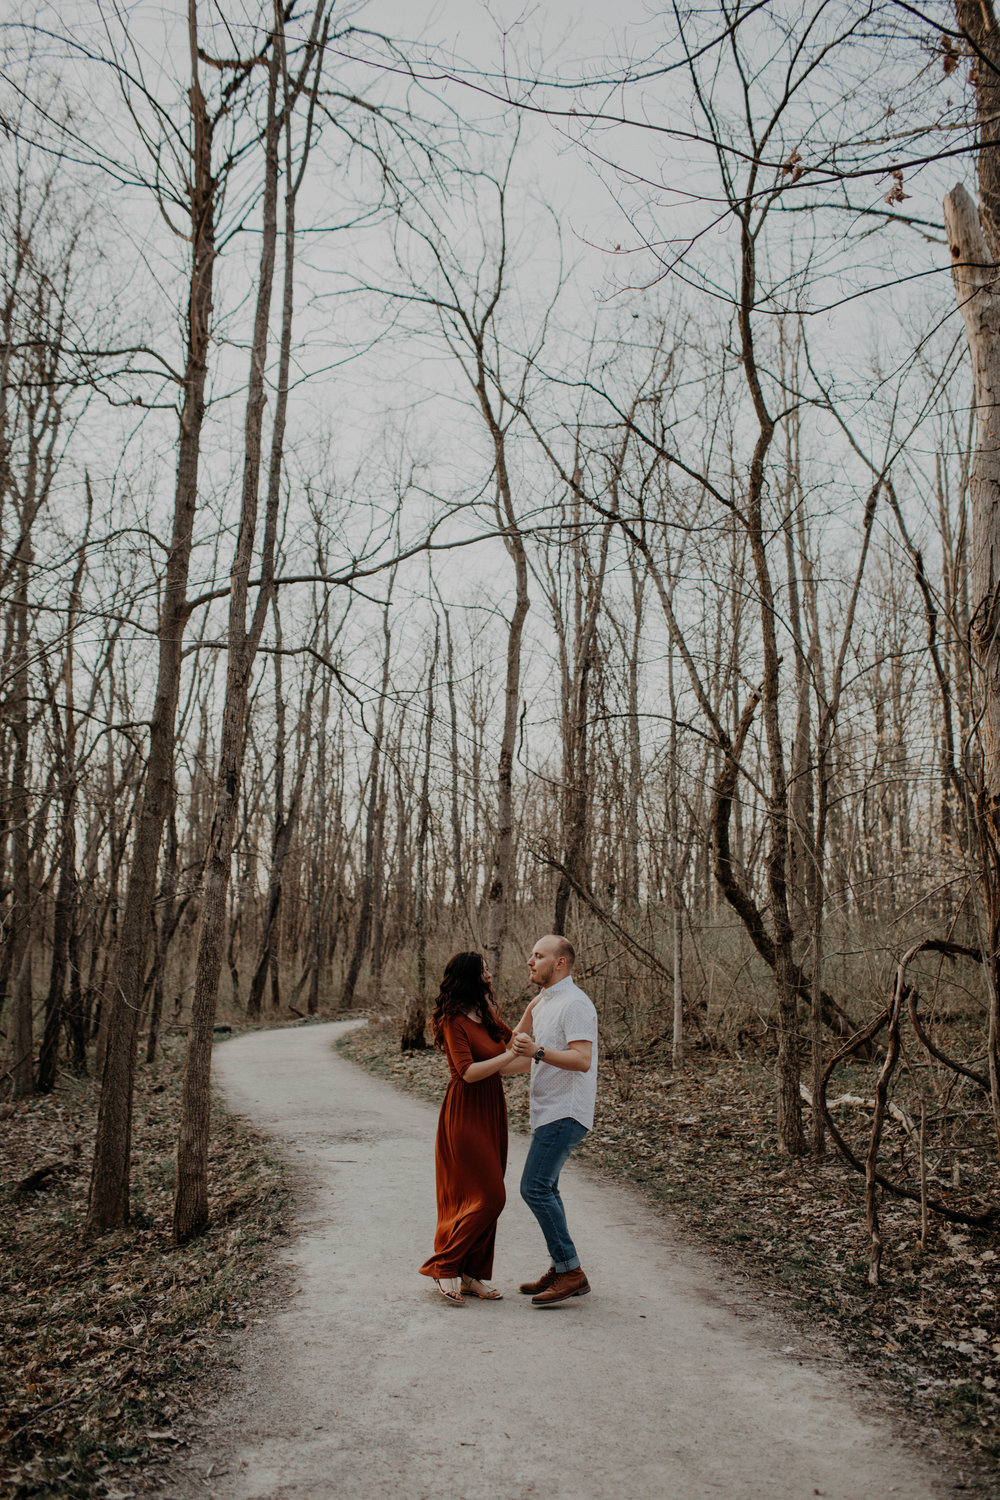 highbanks metro park columbus ohio wedding and couples session photographer41.jpg